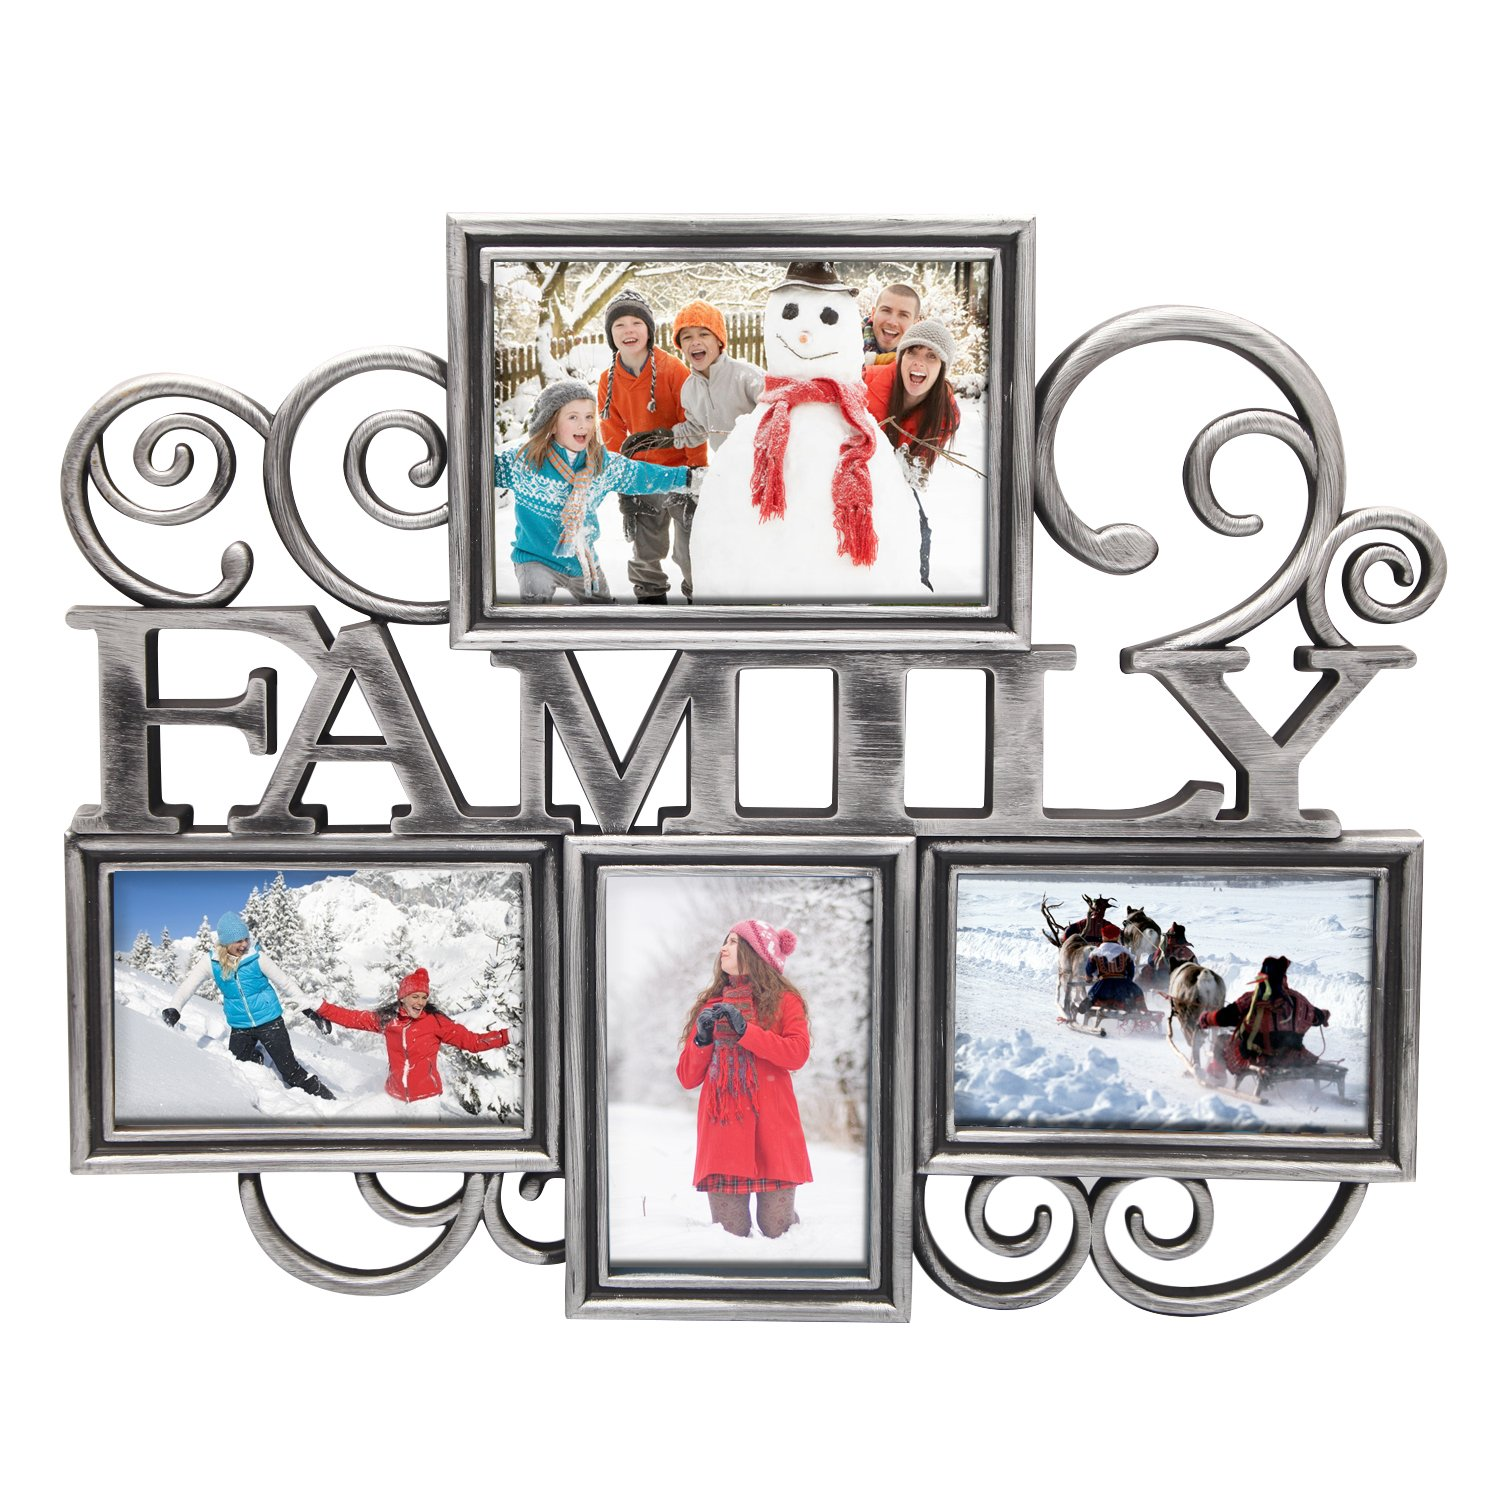 DecentHome Photo Picture Collage Frames Classic Silver 4 Frames Family, 1 For 5X7, 3 For 4X6